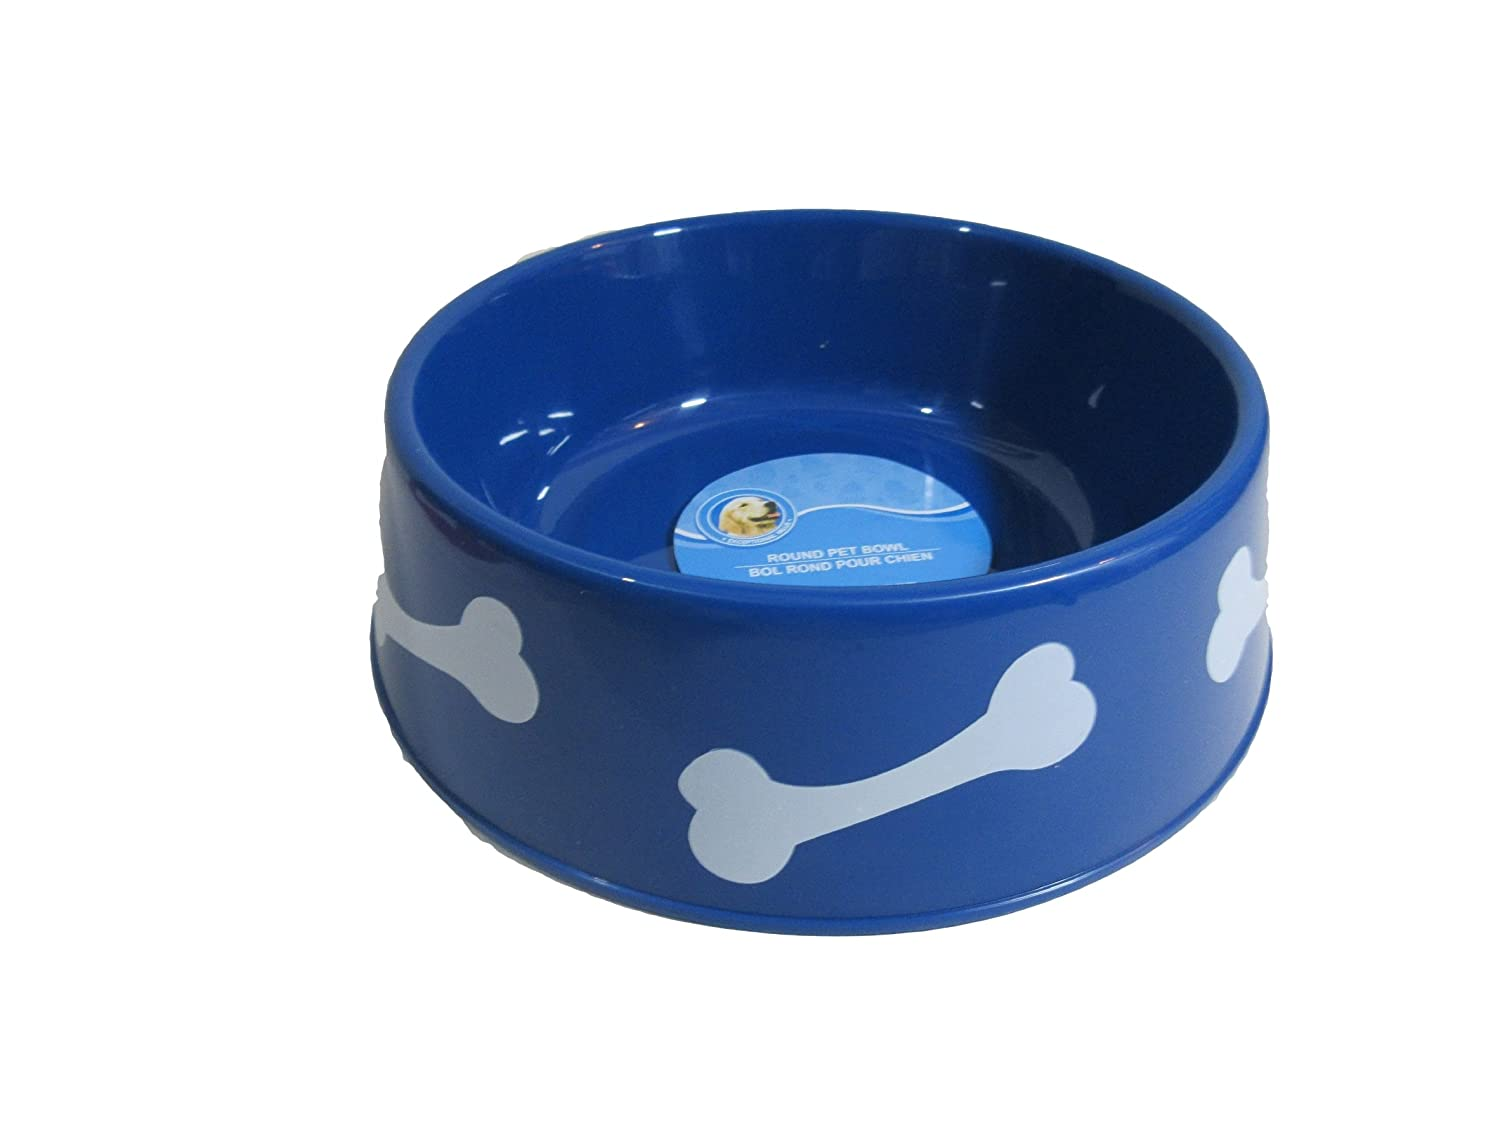 Volt-x Cute Round Large Plastic Pet Bowl for Dogs and Cats- bluee